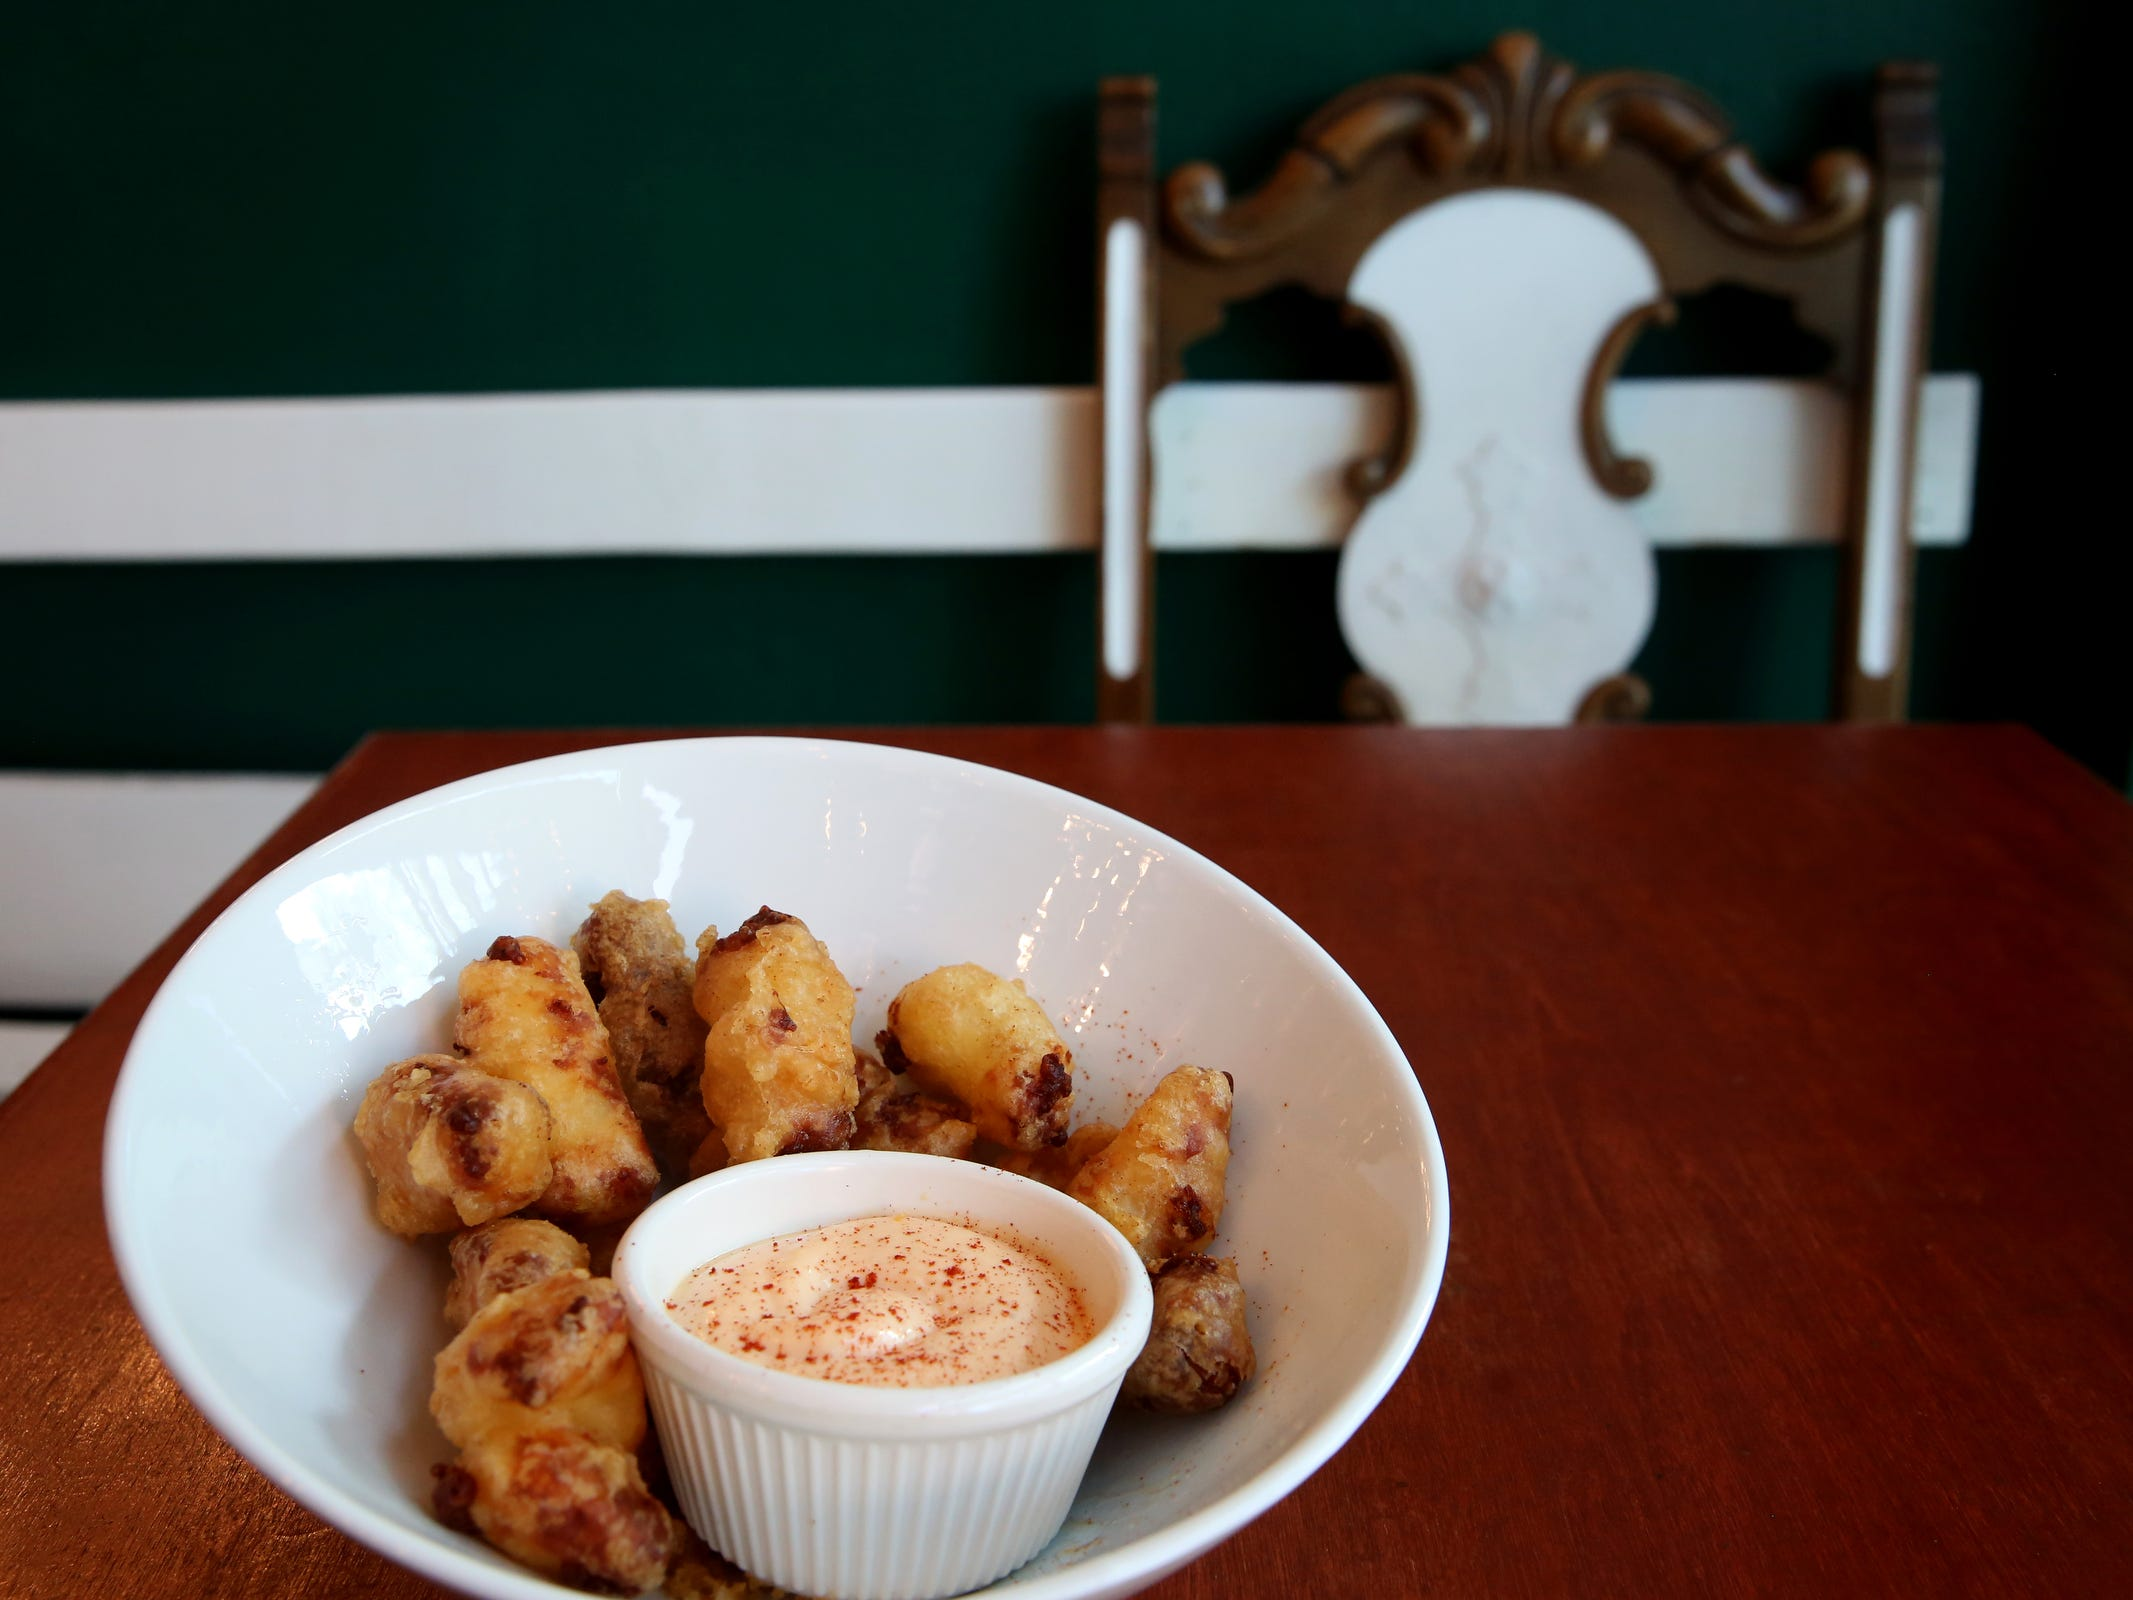 Cheese curds with Ellsworth Creamery cheddar and smoked paprika aioli at Epilogue Kitchen & Cocktails in Salem on March 20, 2019. The restaurant opens in downtown Salem on Friday.